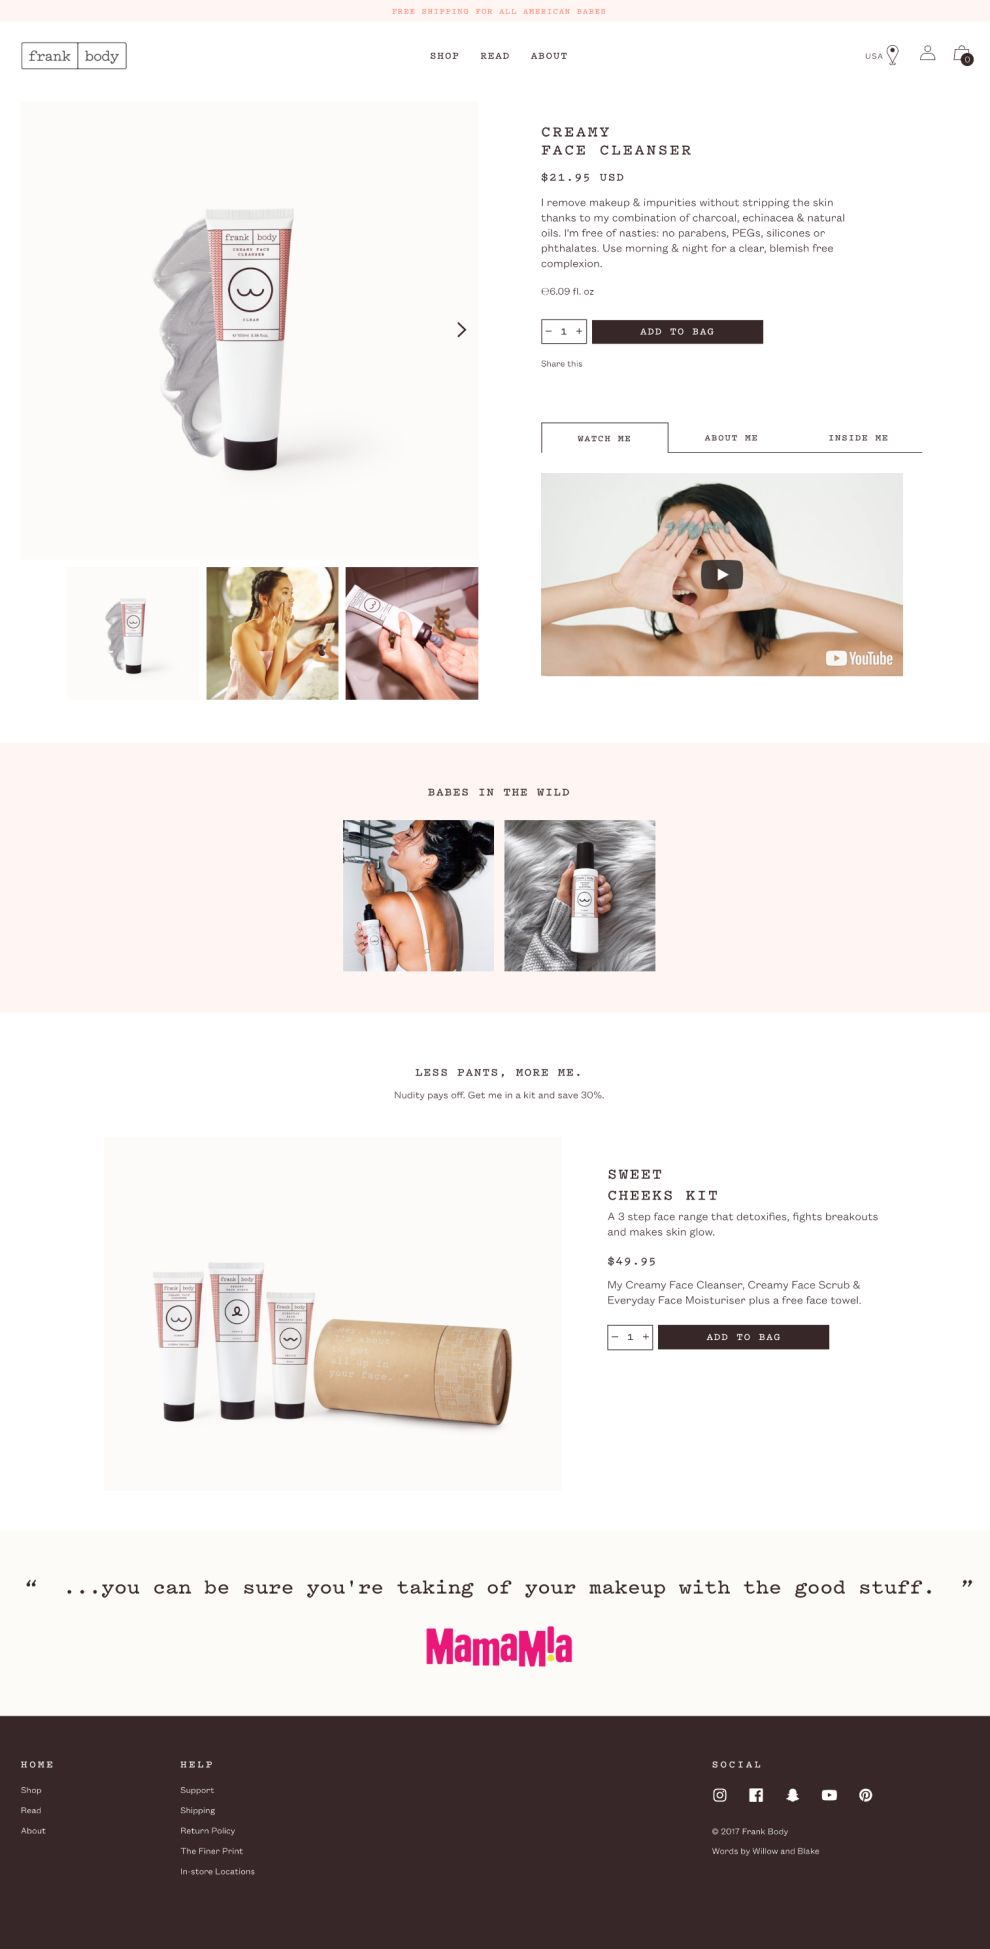 Frank Body Clean Product Page